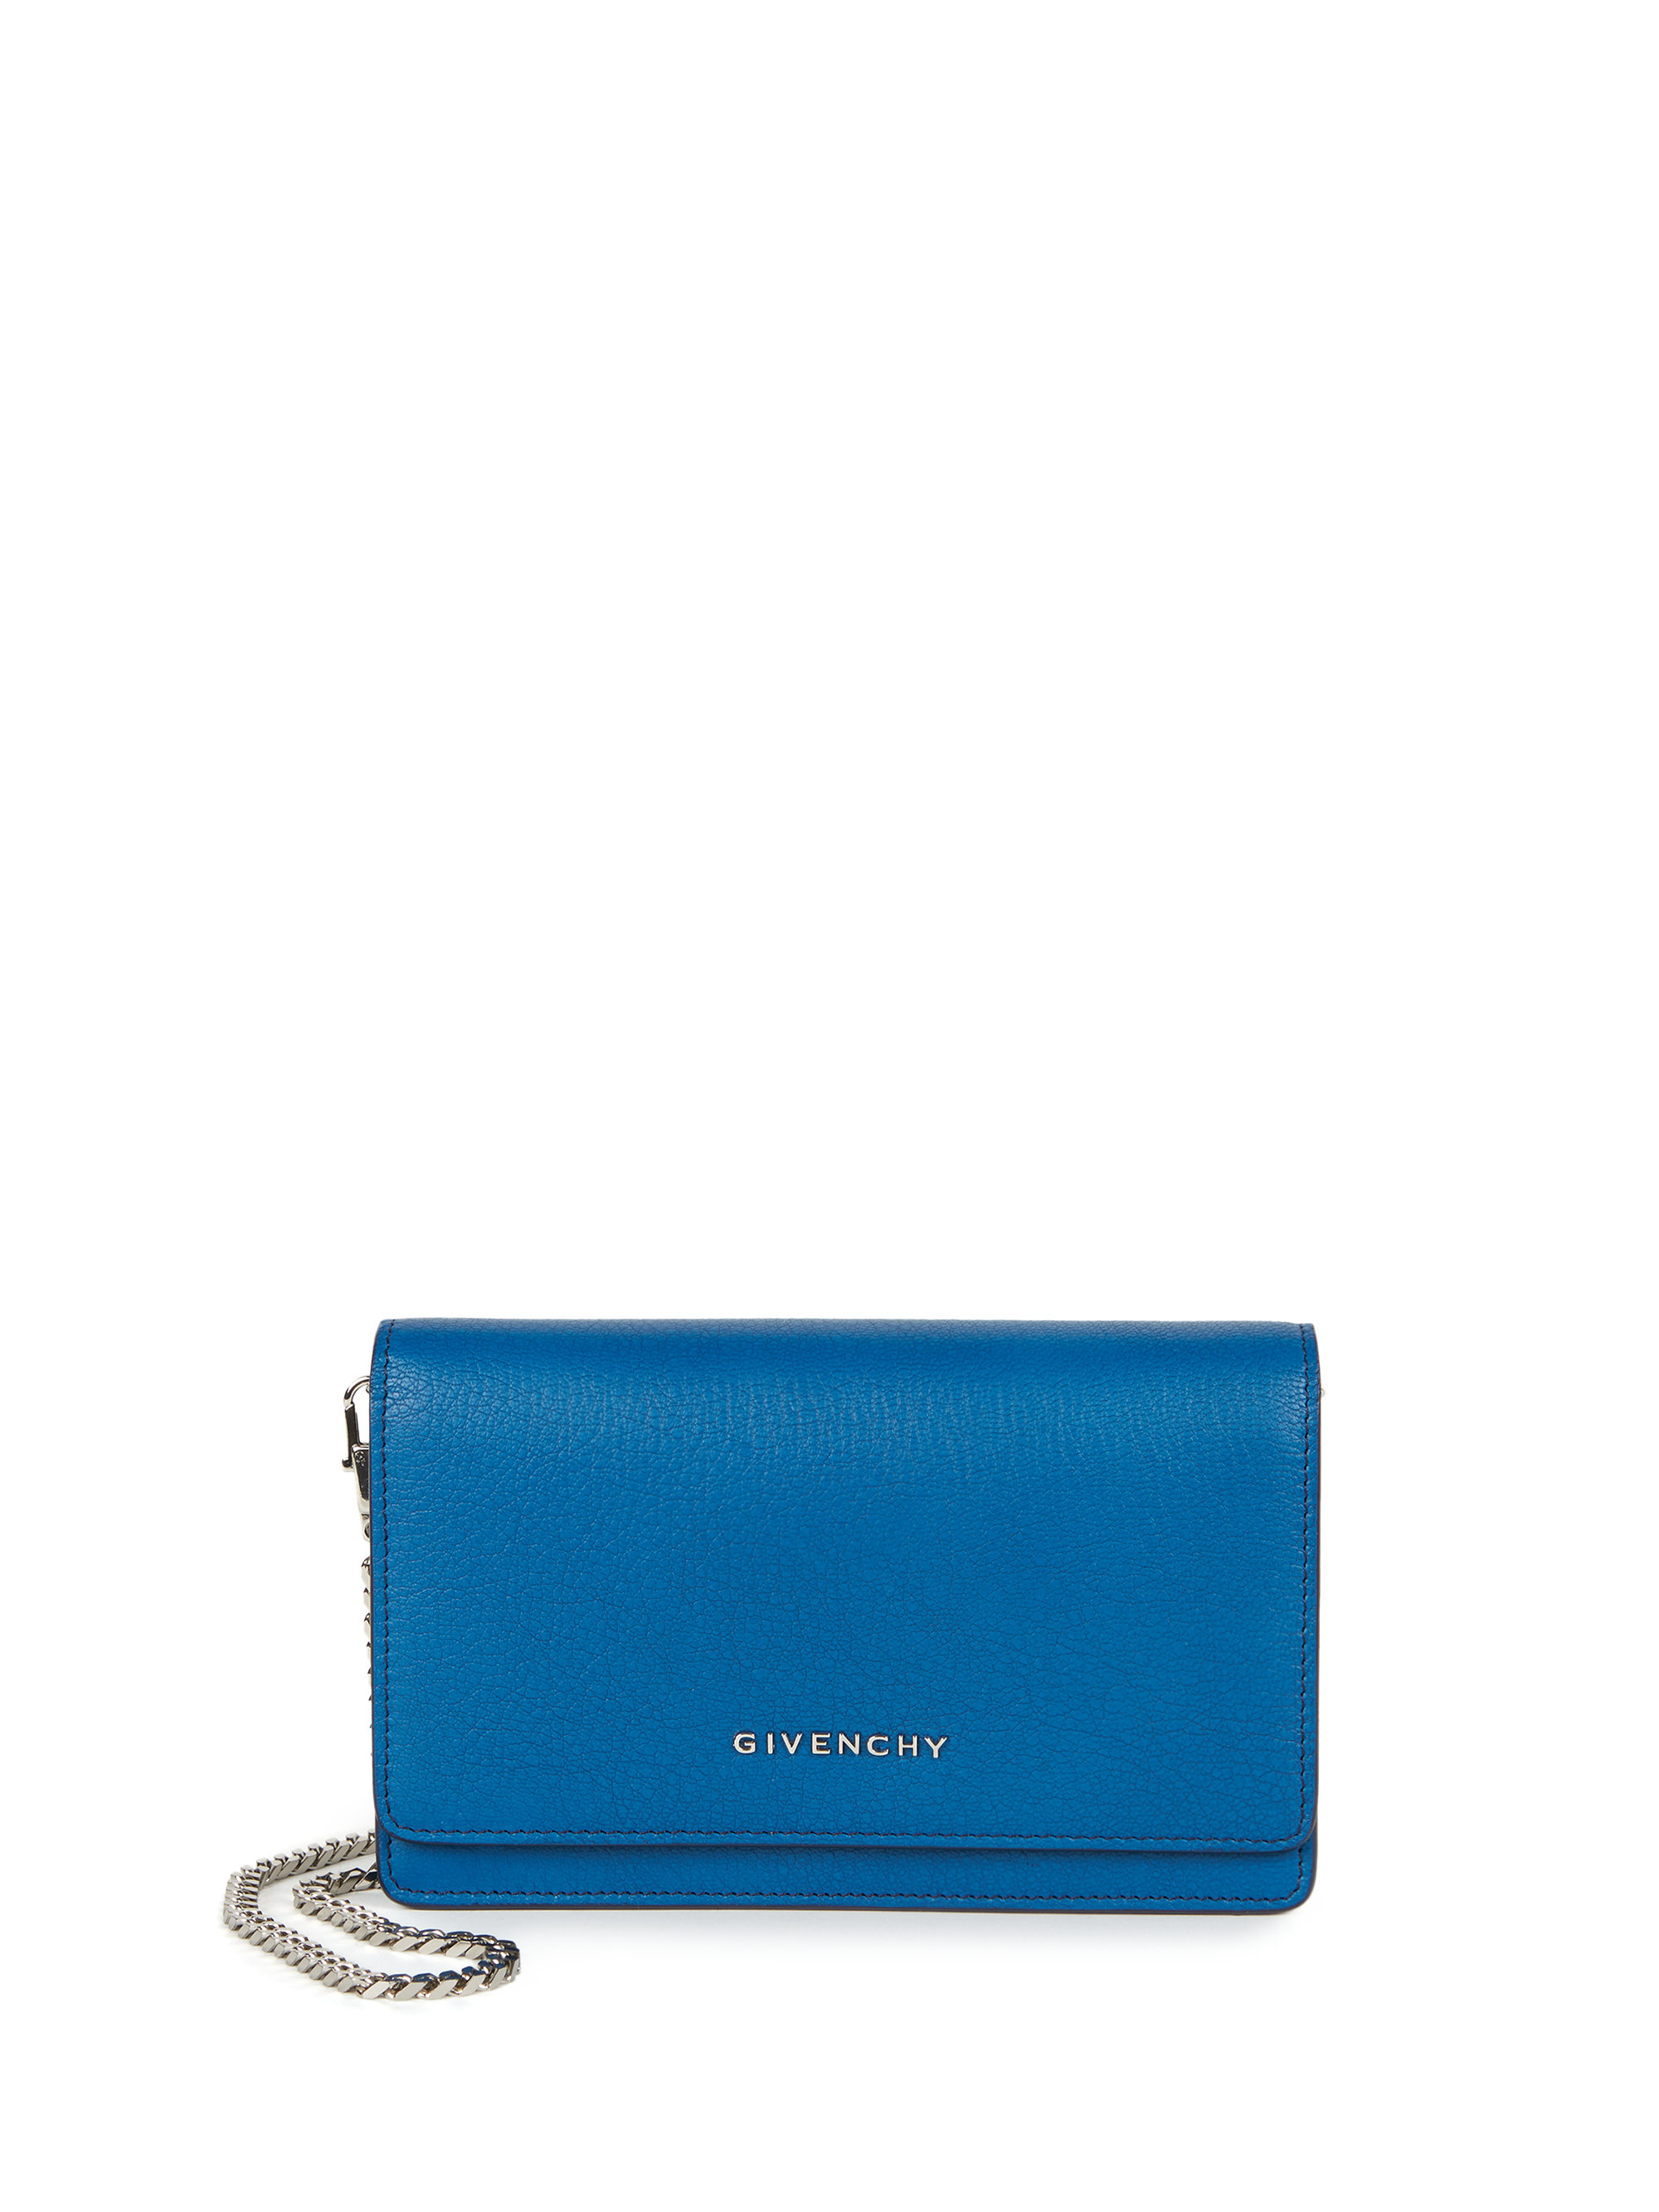 97280f1019 Gallery. Previously sold at: Saks Fifth Avenue · Women's Wallet On Chain  Women's Givenchy Pandora